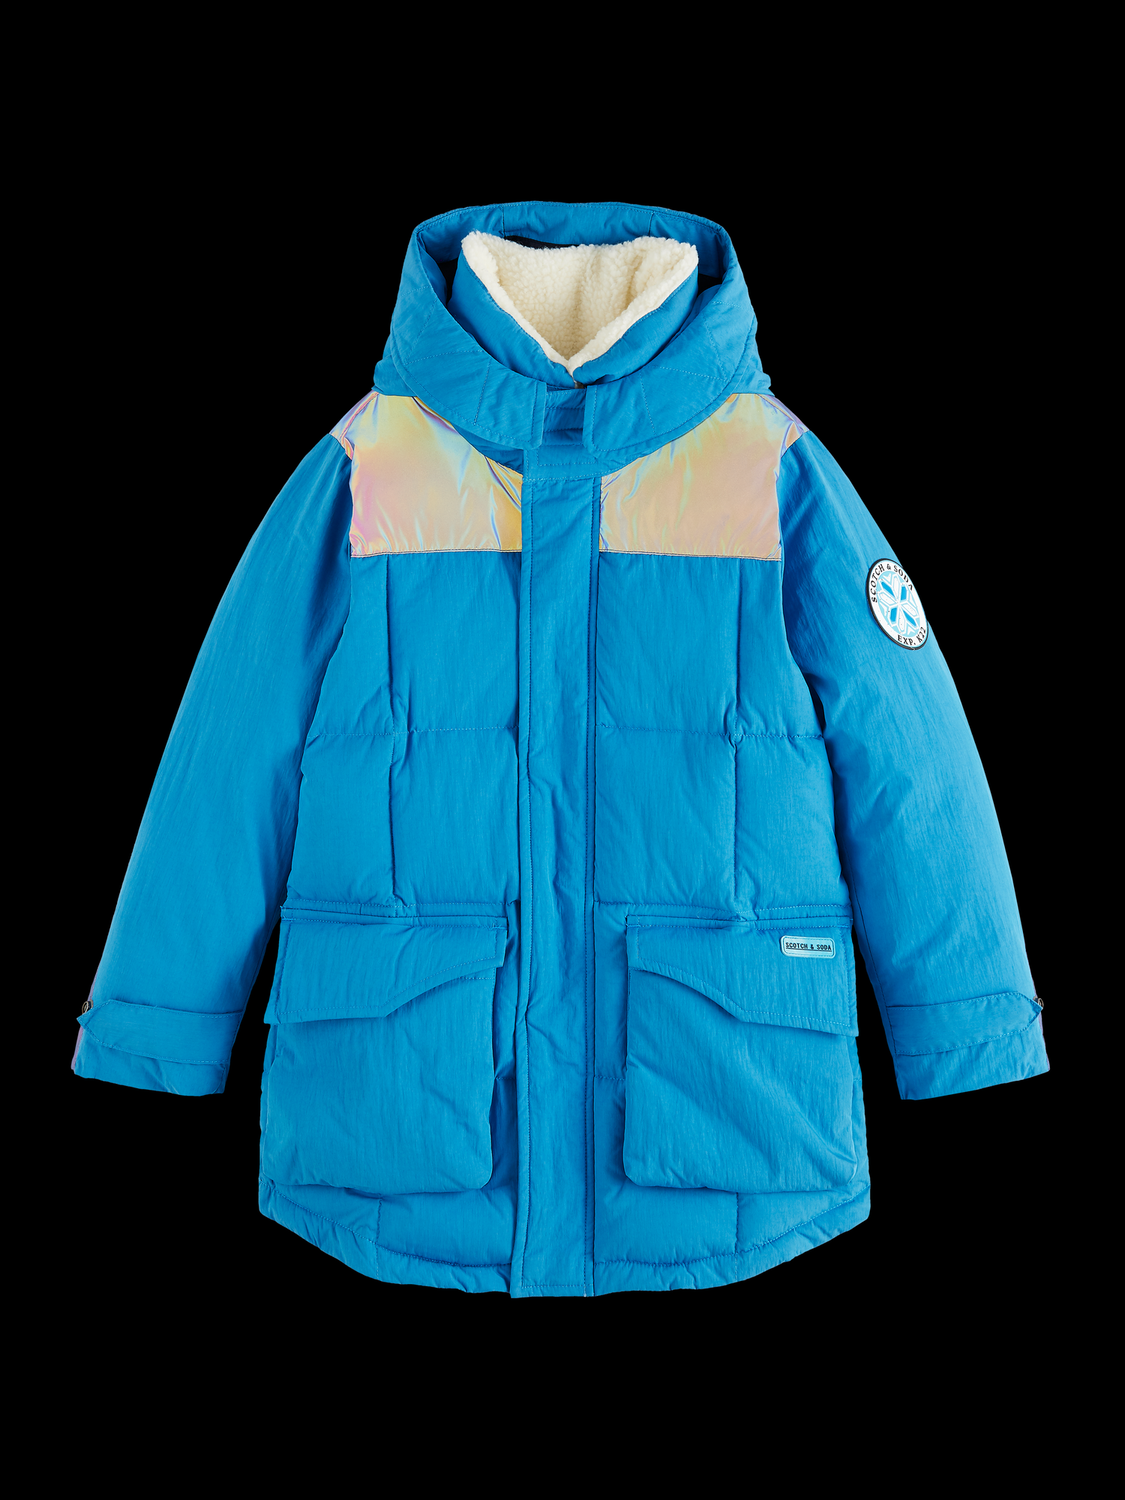 Kids Reflective padded jacket